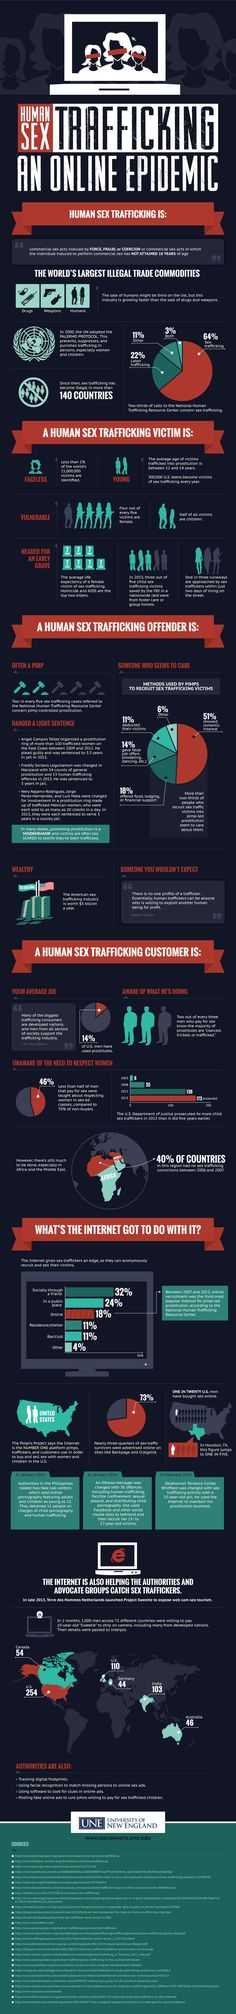 Human Sex Trafficking: An Online Epidemic #infographic